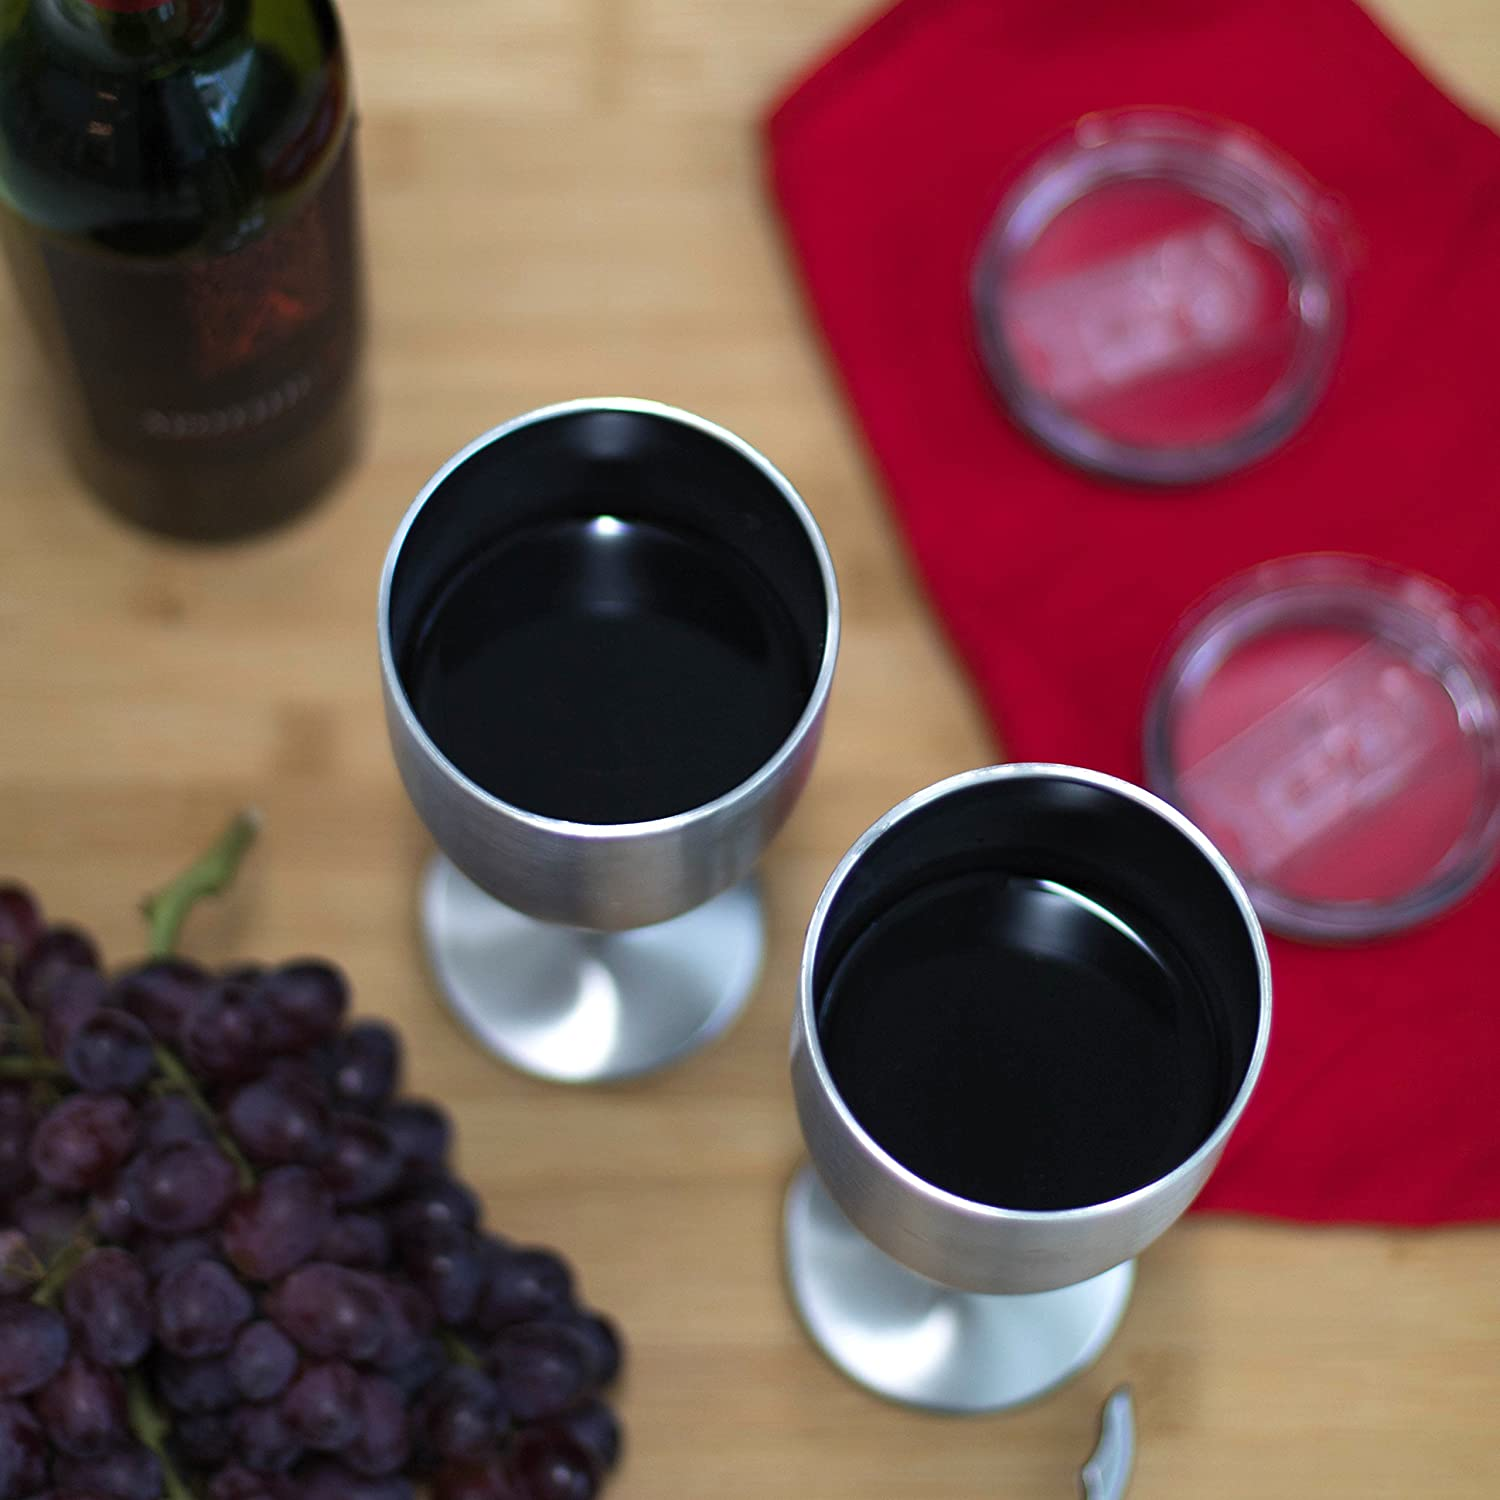 Outdoor BBQ Double Walled w Camping Multifunctional Wine Glasses DIshwasher Safe Easy to Clean Premium Grade Stainless Steel BPA Free Travel Artigee Wine Glass 2-Pack Lid